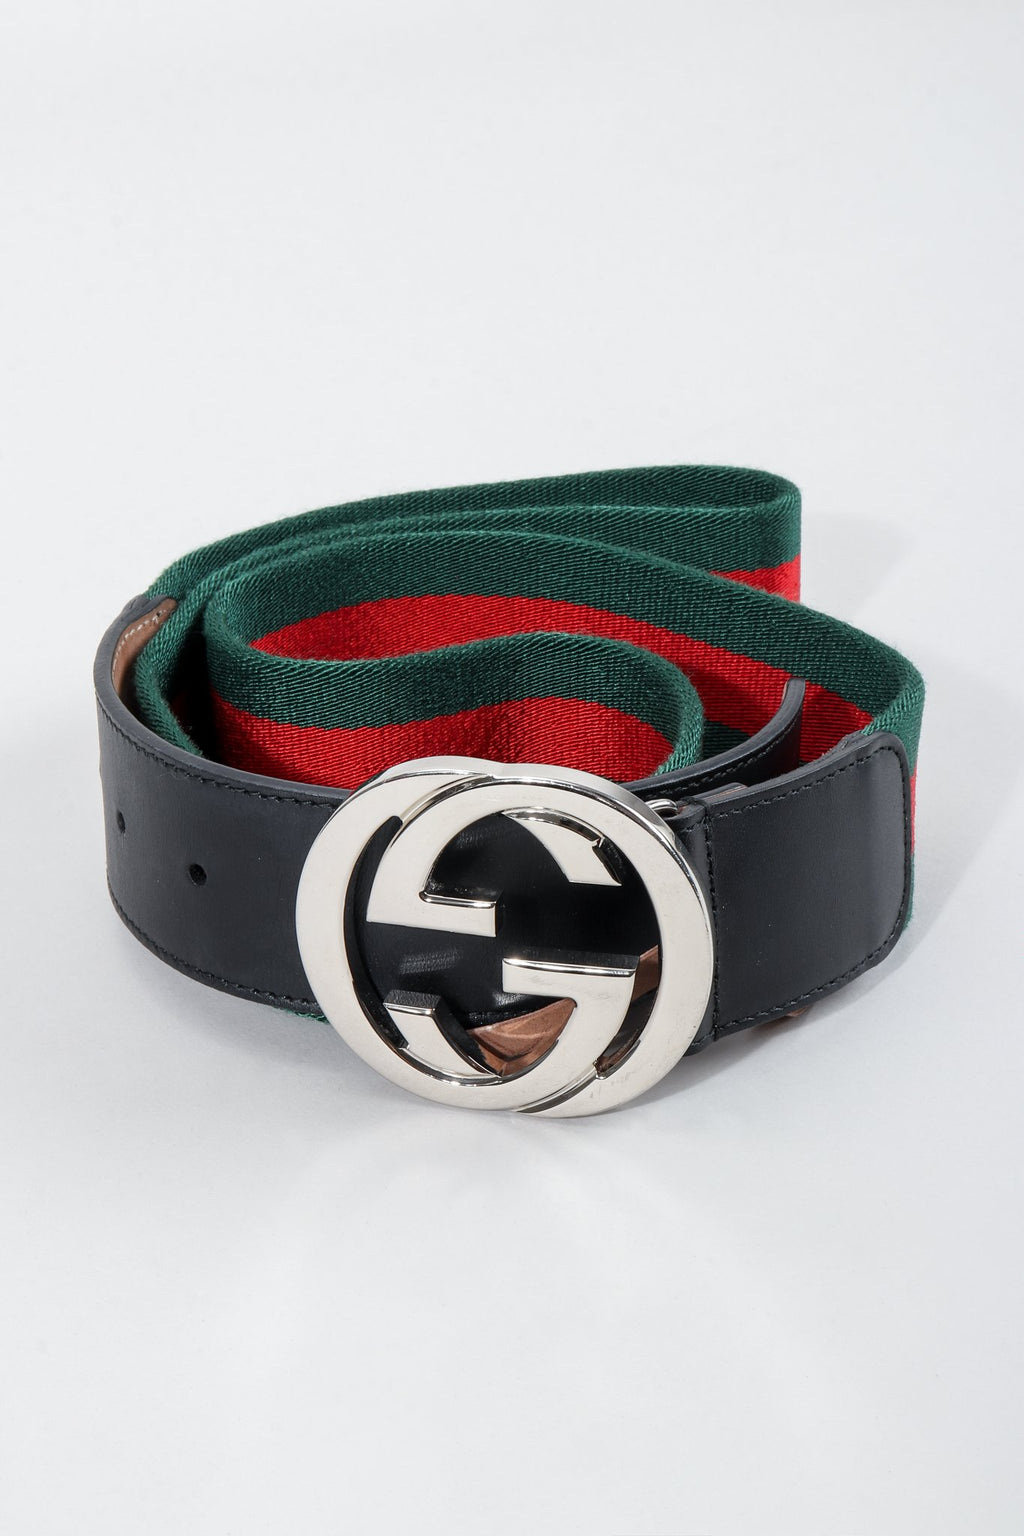 Vintage Gucci Interlocking Logo Belt at Recess LA